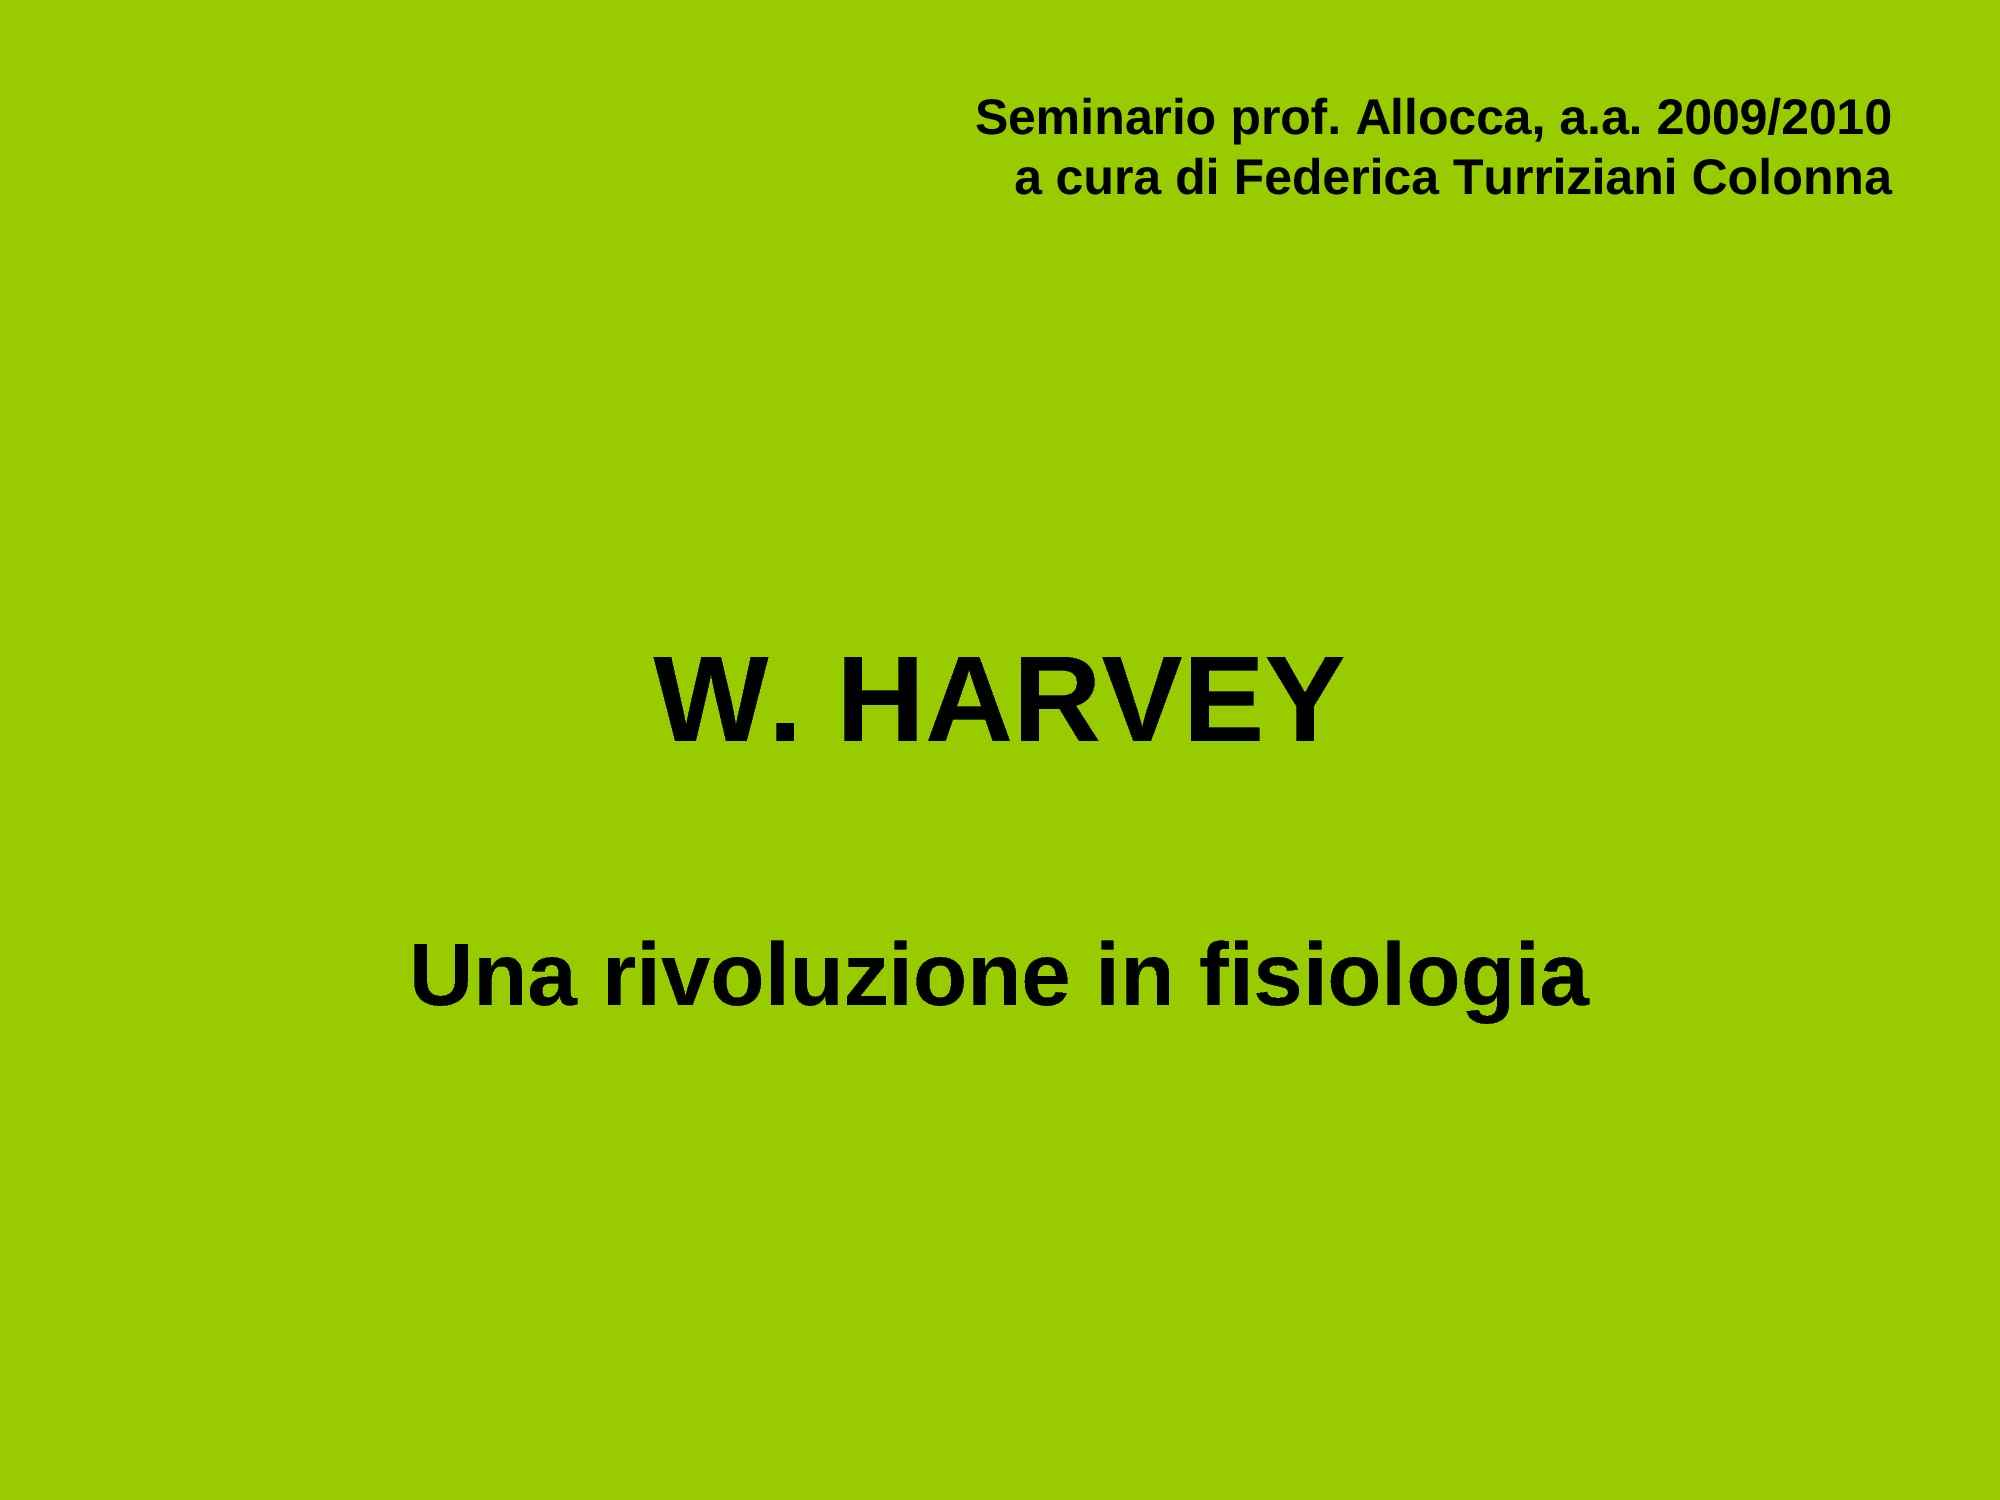 Harvey, William Pag. 1